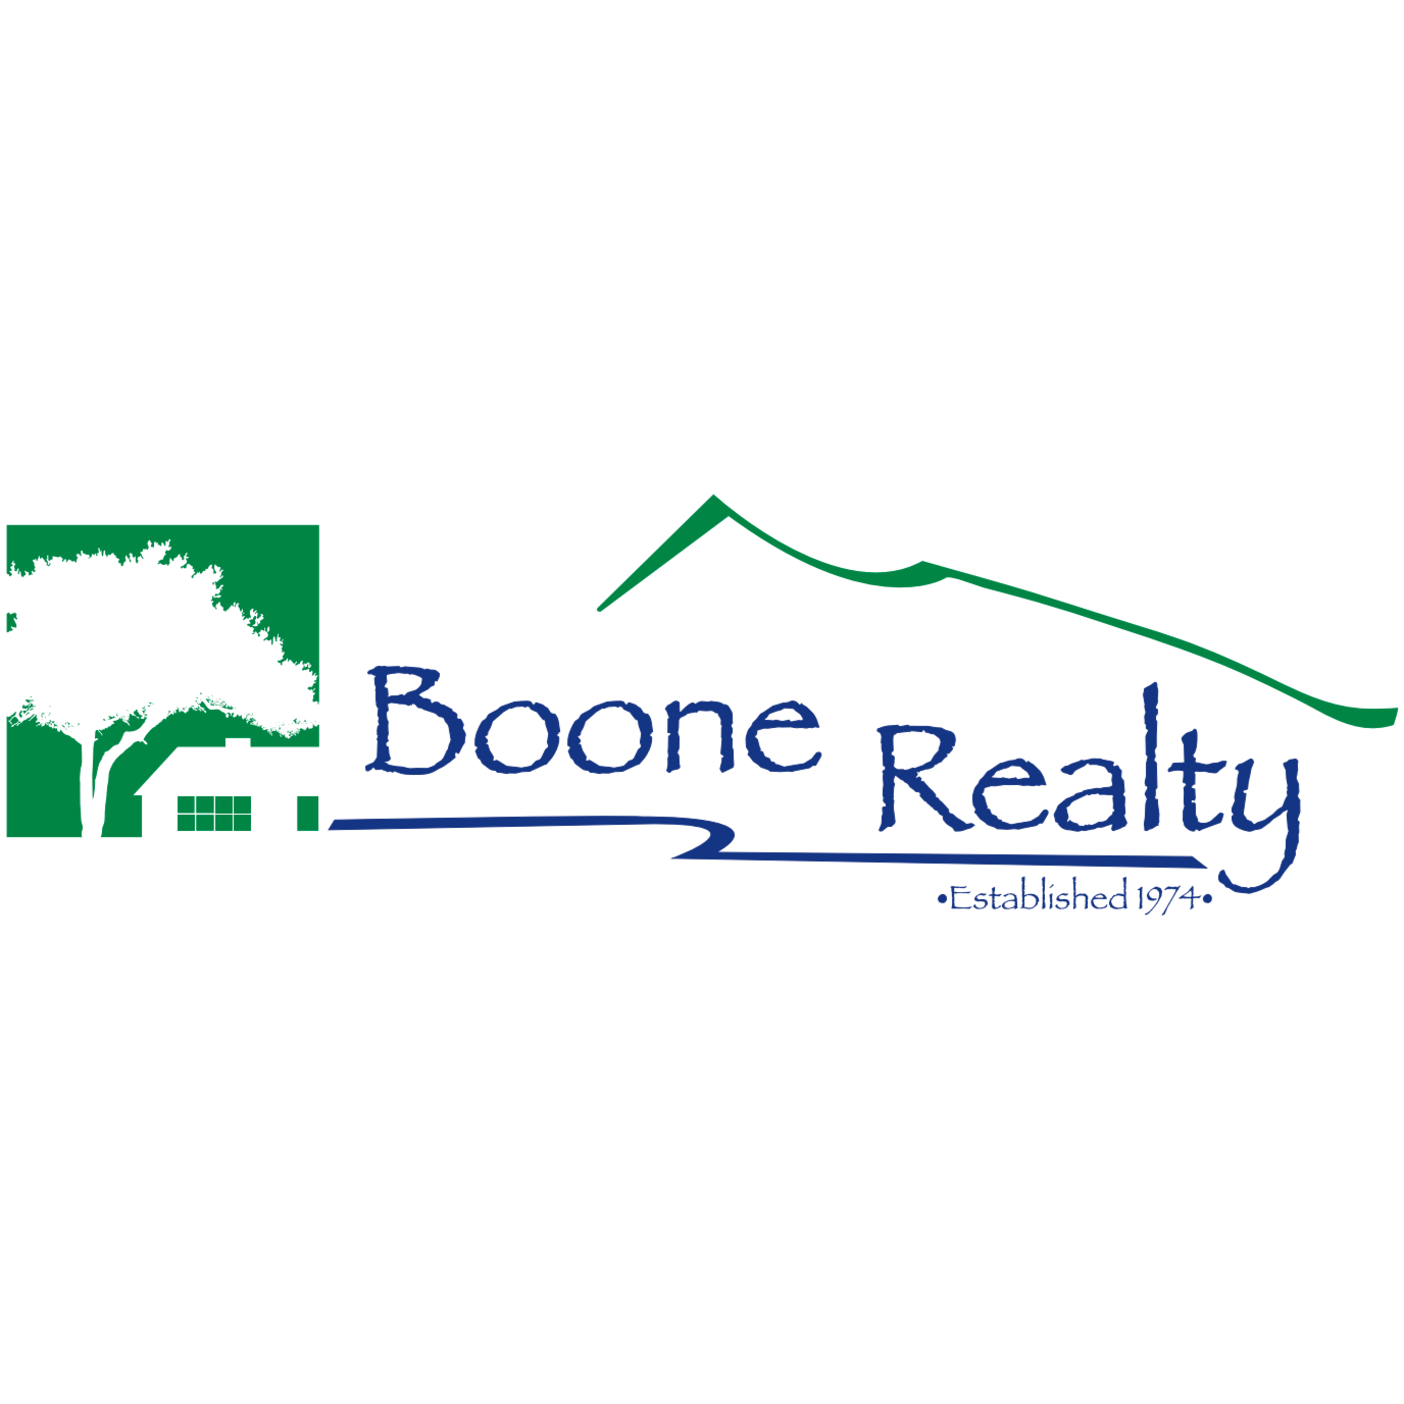 Scott Warren | Boone Realty - Boone, NC - Real Estate Agents